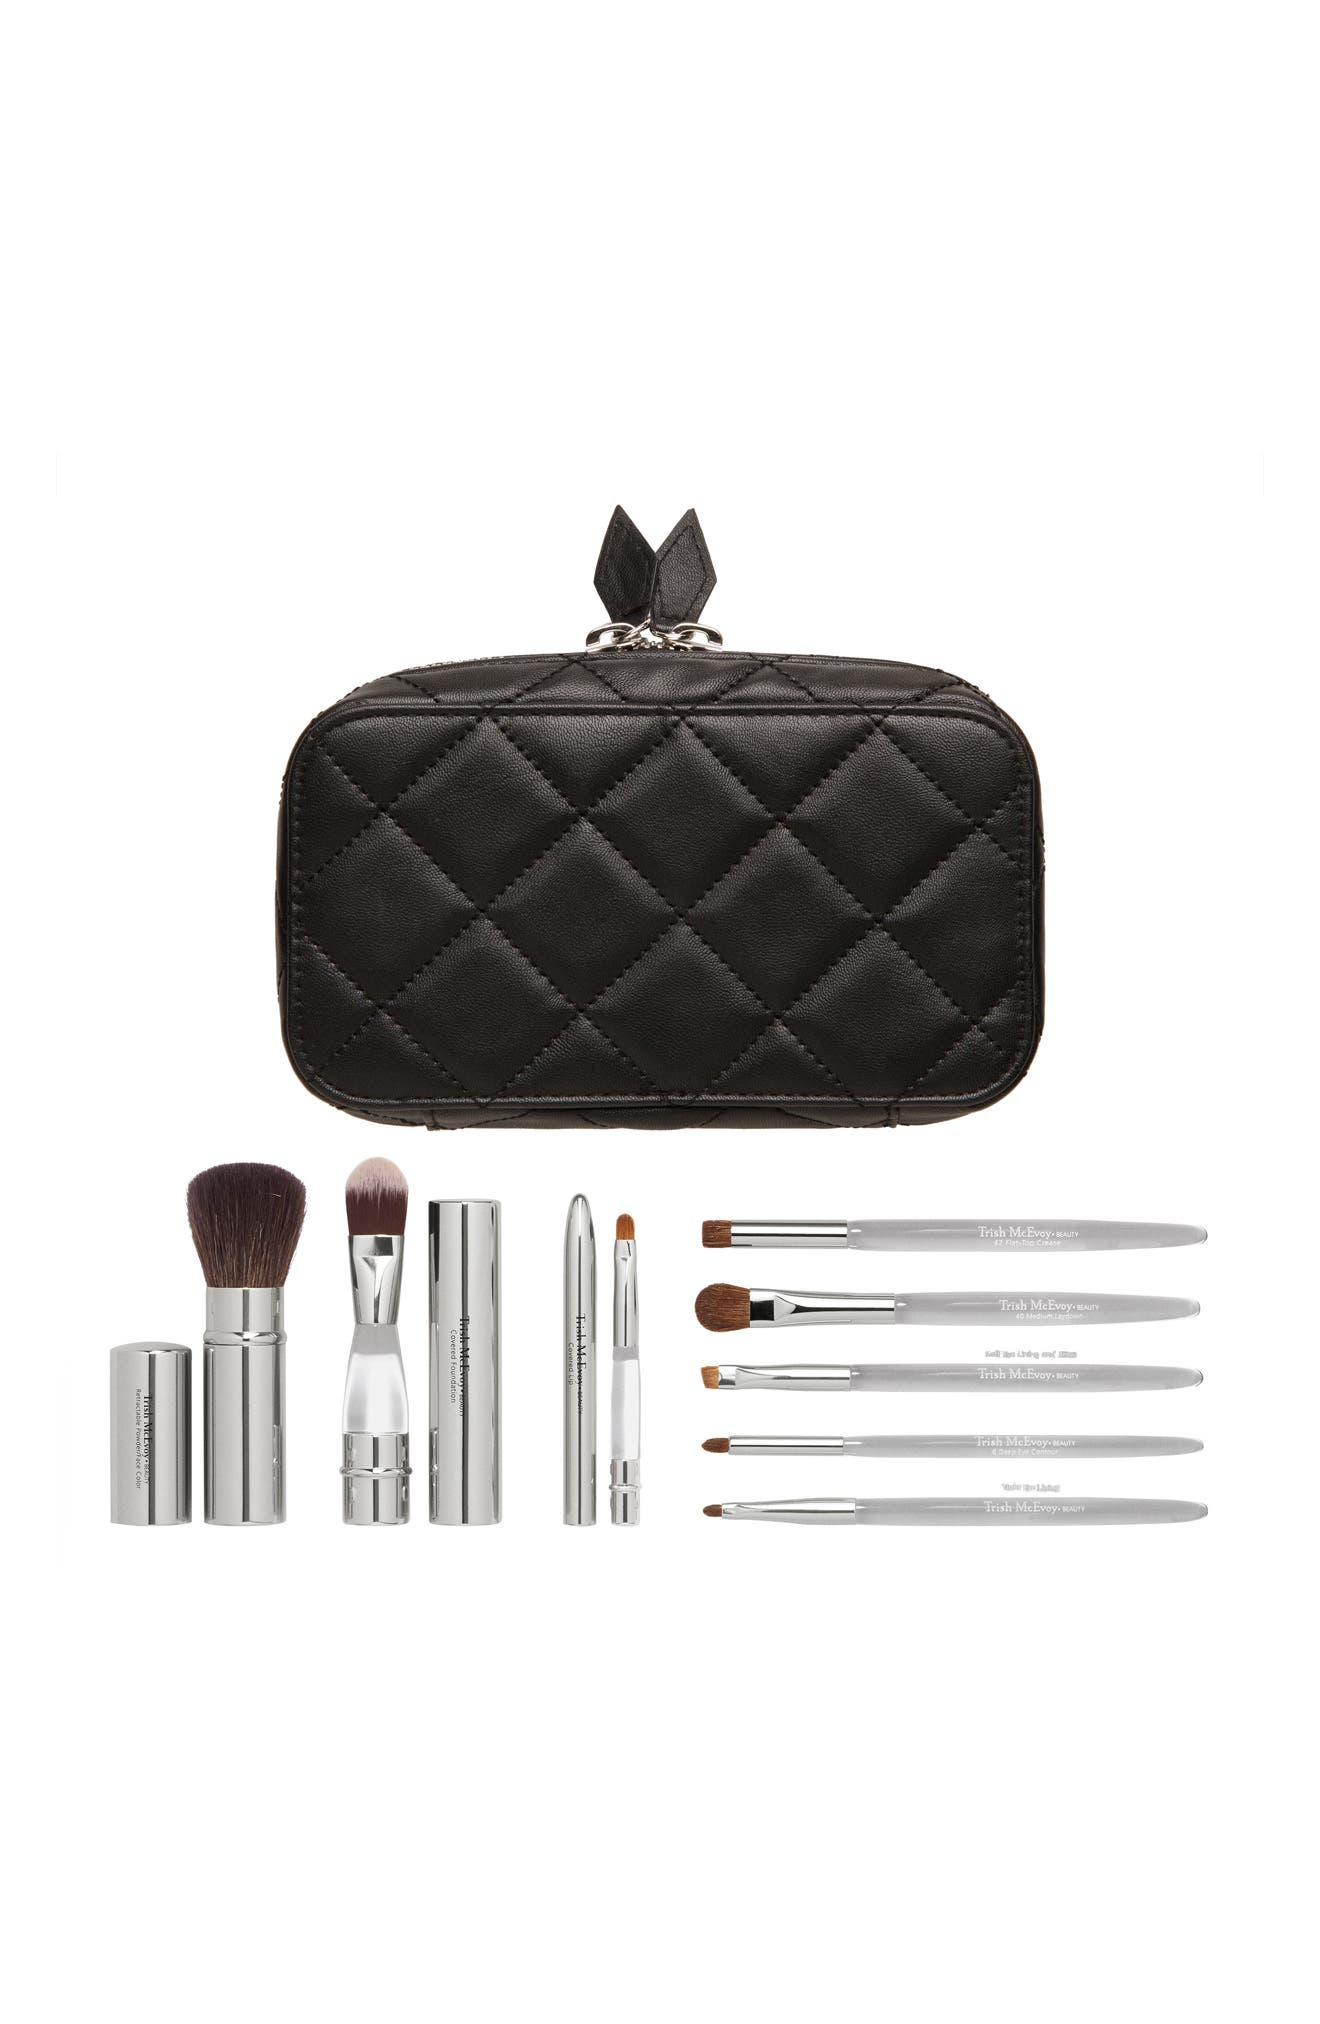 Trish McEvoy The Power of Brushes® Collection ($402.50 Value)